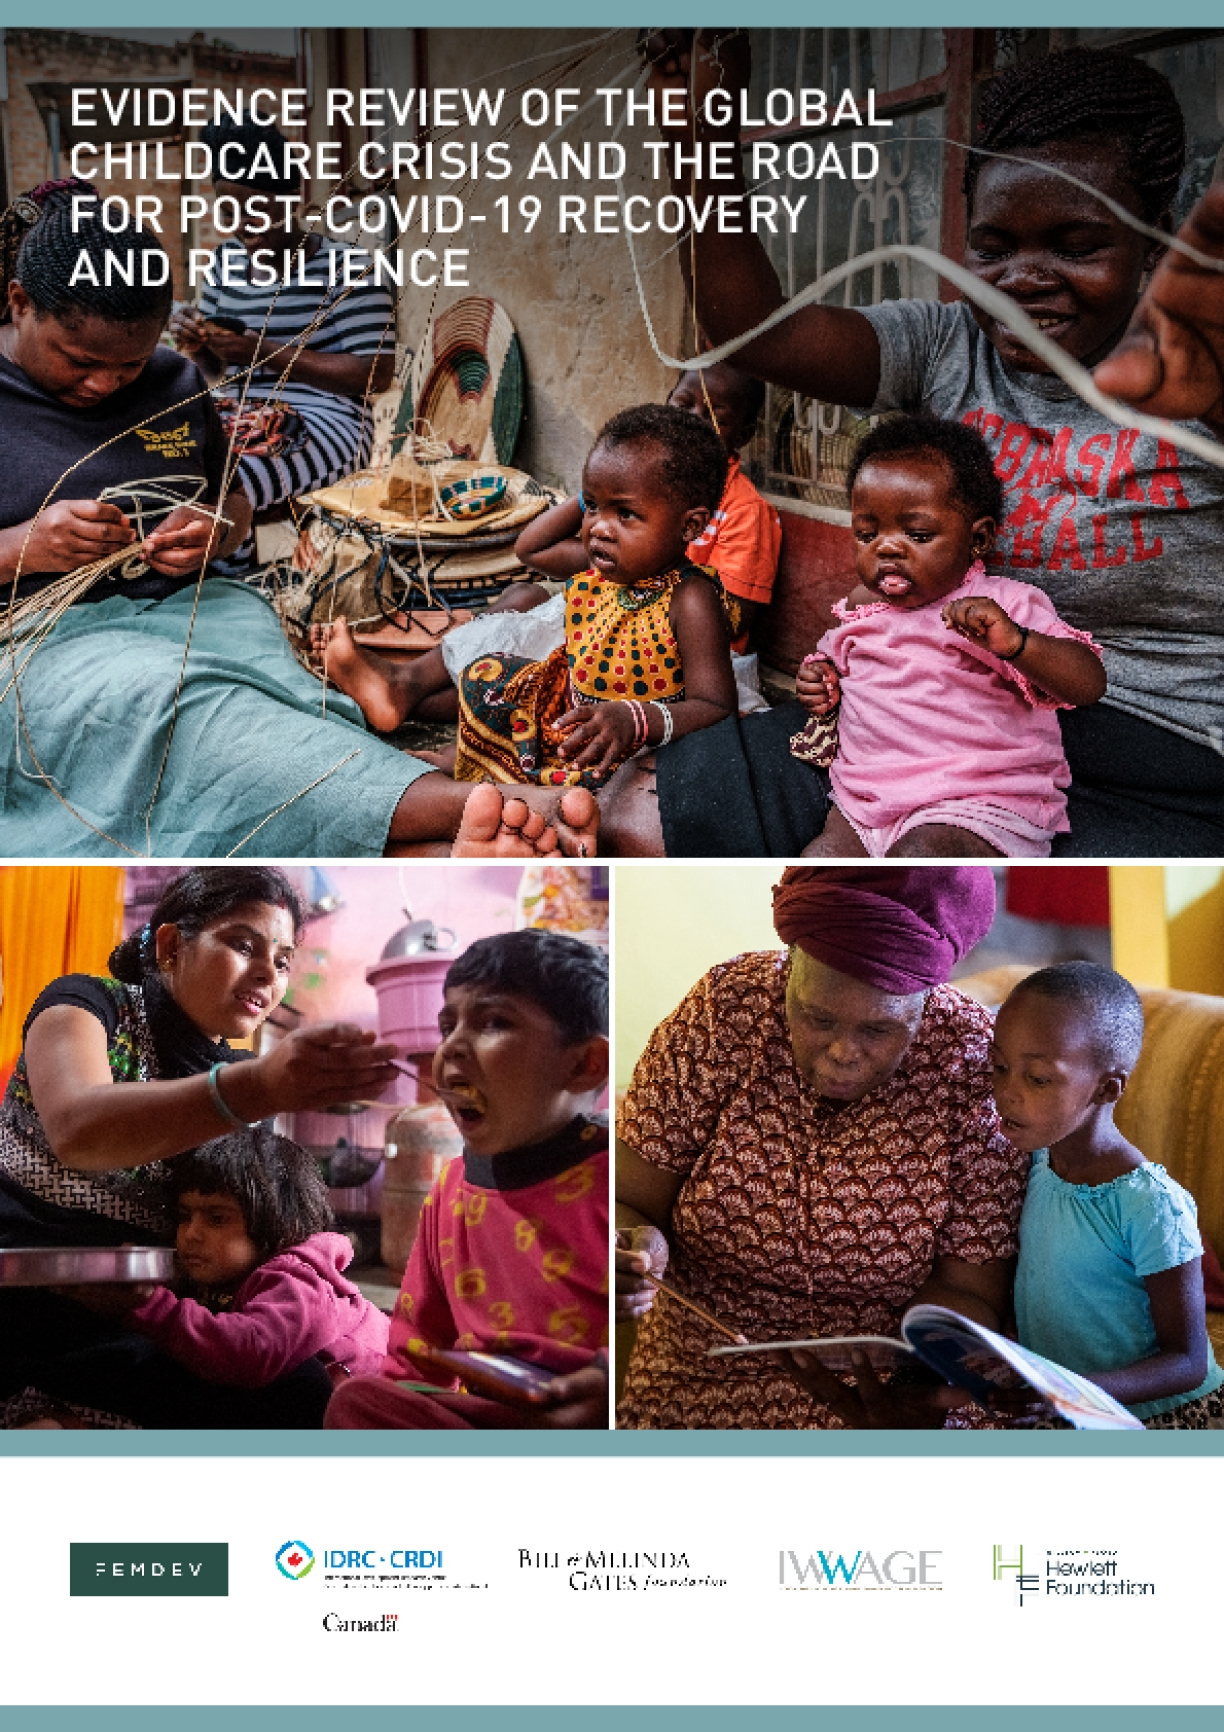 Evidence Review of the Global Childcare Crisis and the Road for Post-COVID-19 Recovery and Resilience